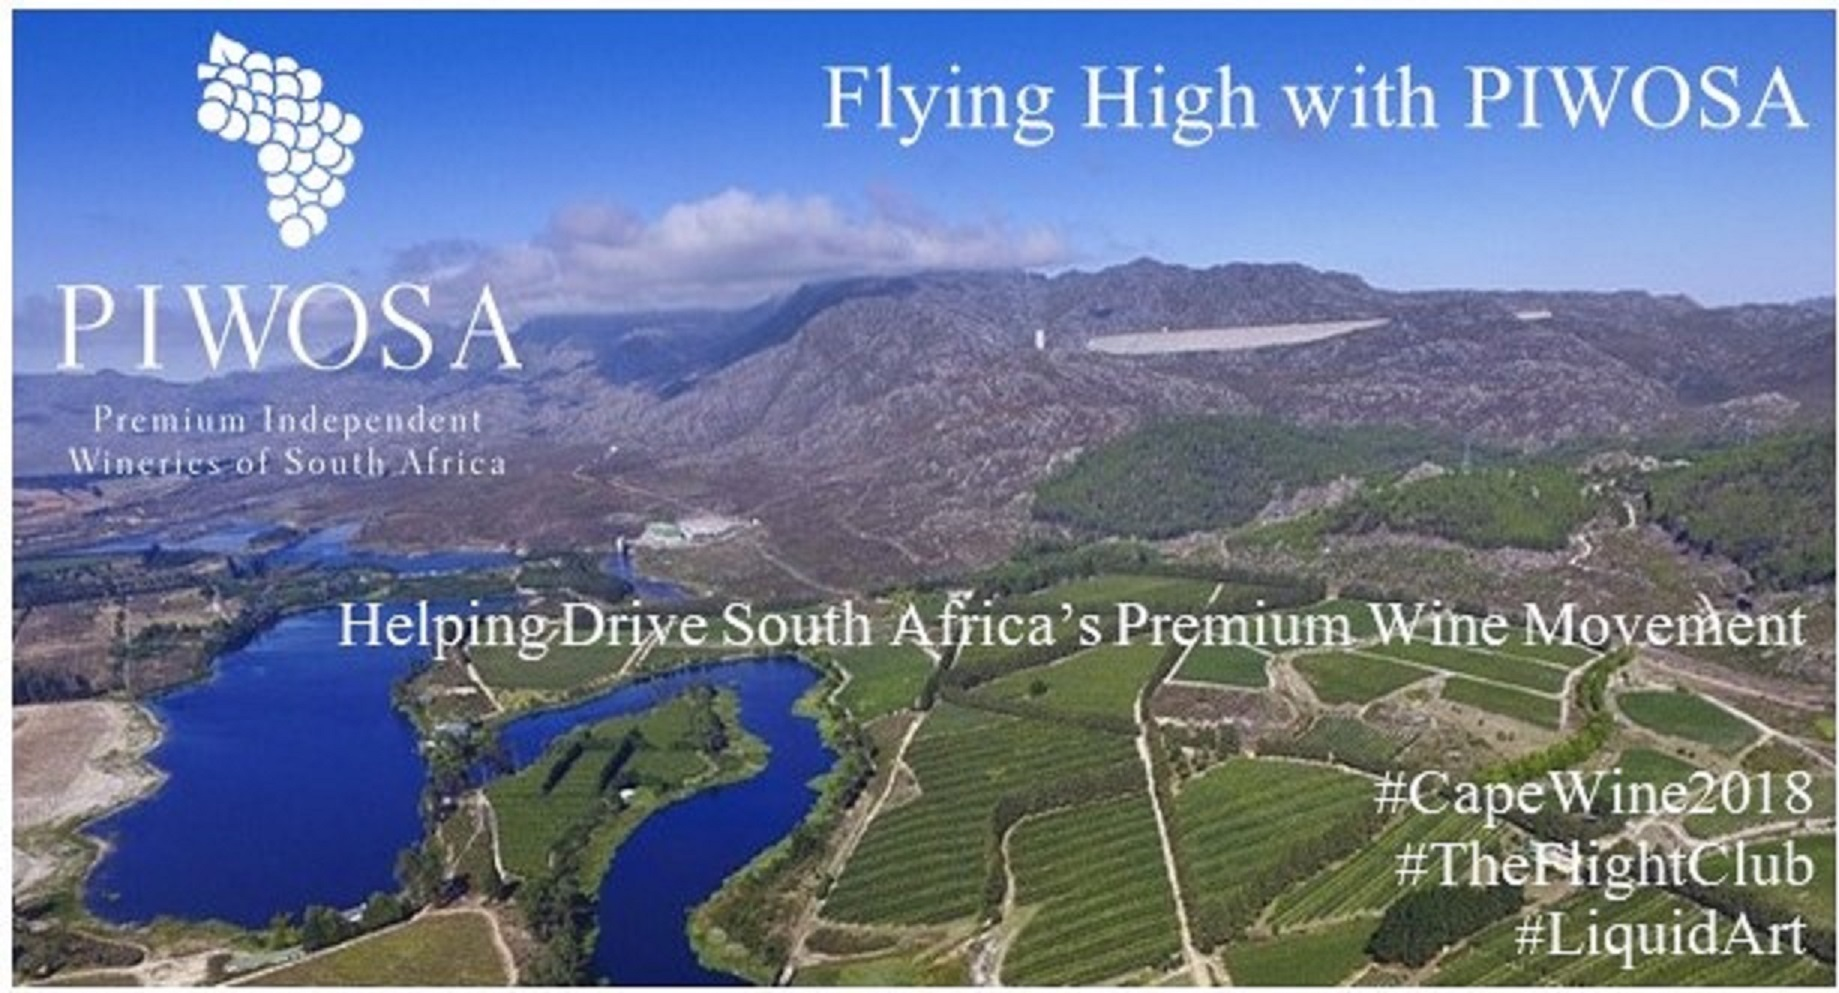 {NEWS}{MEDIA RELEASE} LOCAL SOMMELIERS AND WINE PROFESSIONALS INVITED TO FLY HIGH WITH PIWOSA AT CAPE WINE 2018